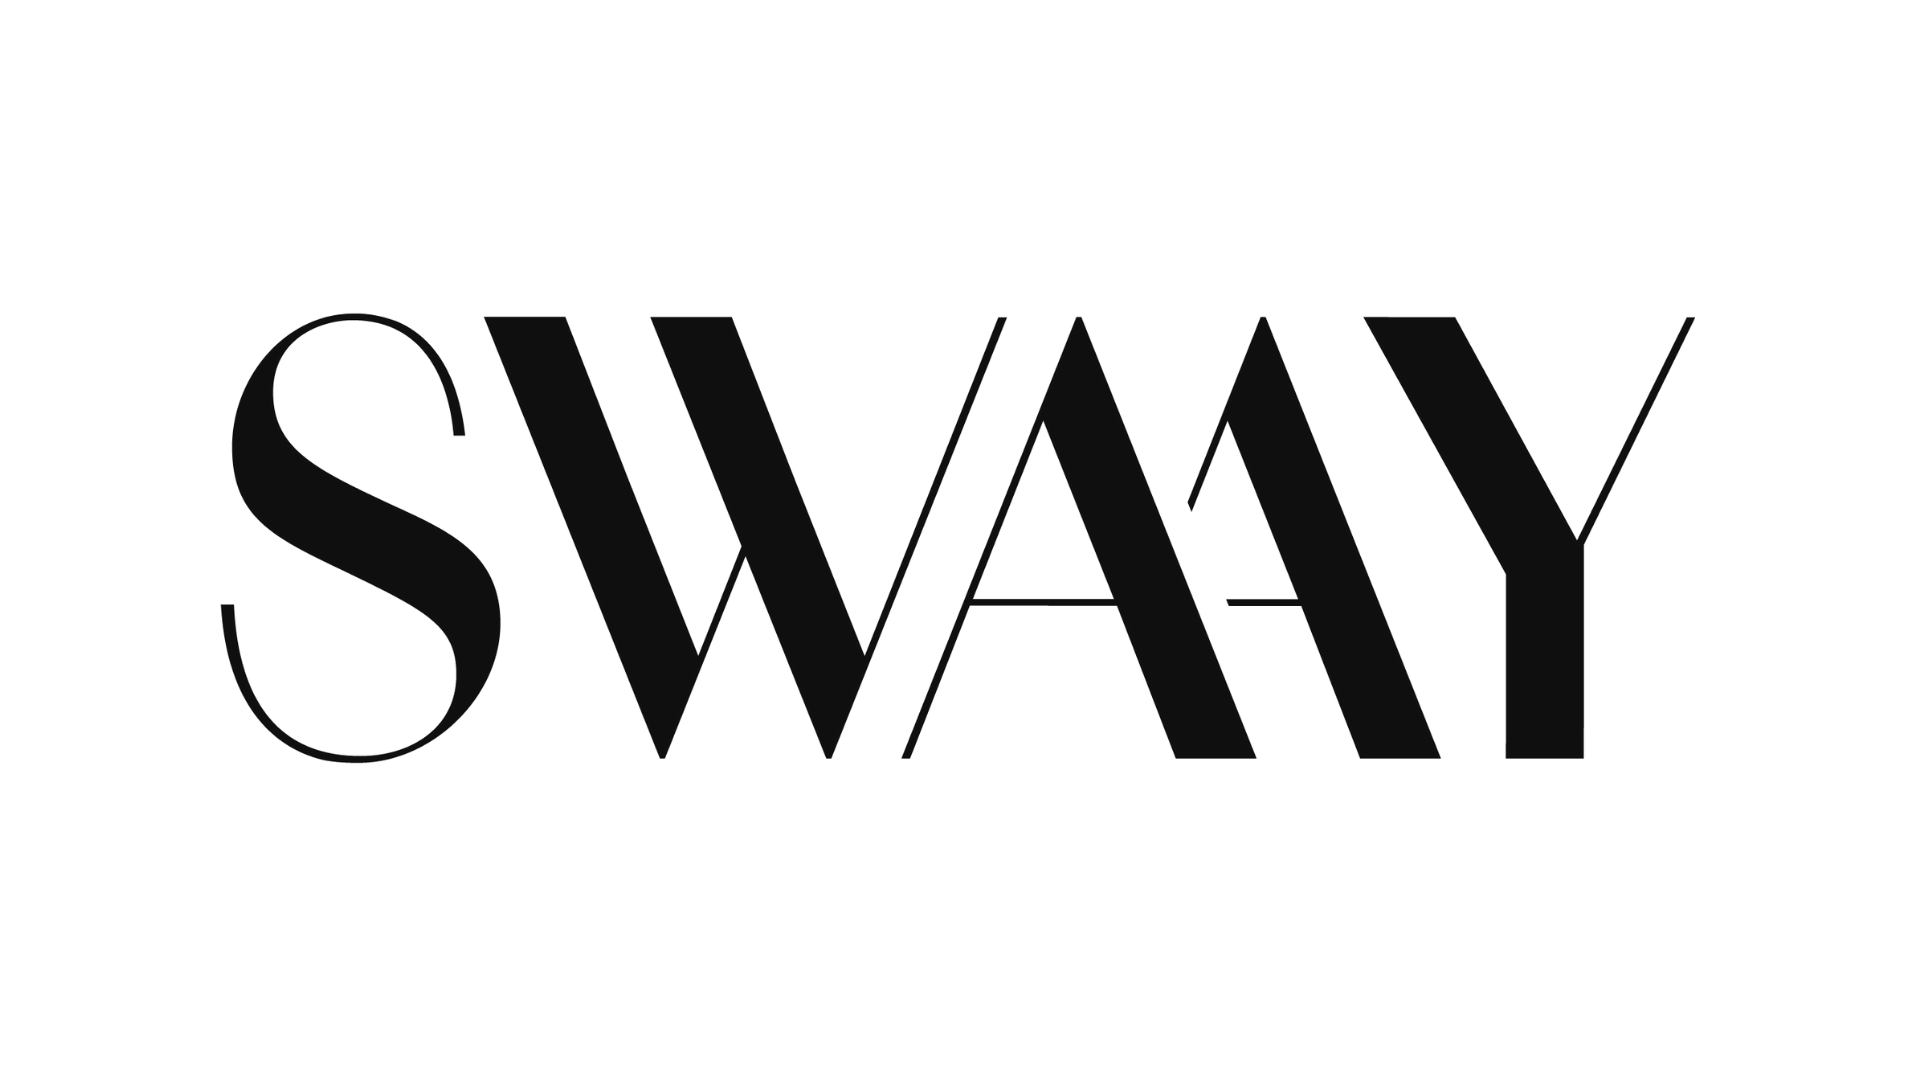 SWAAY Chloe Capital Press